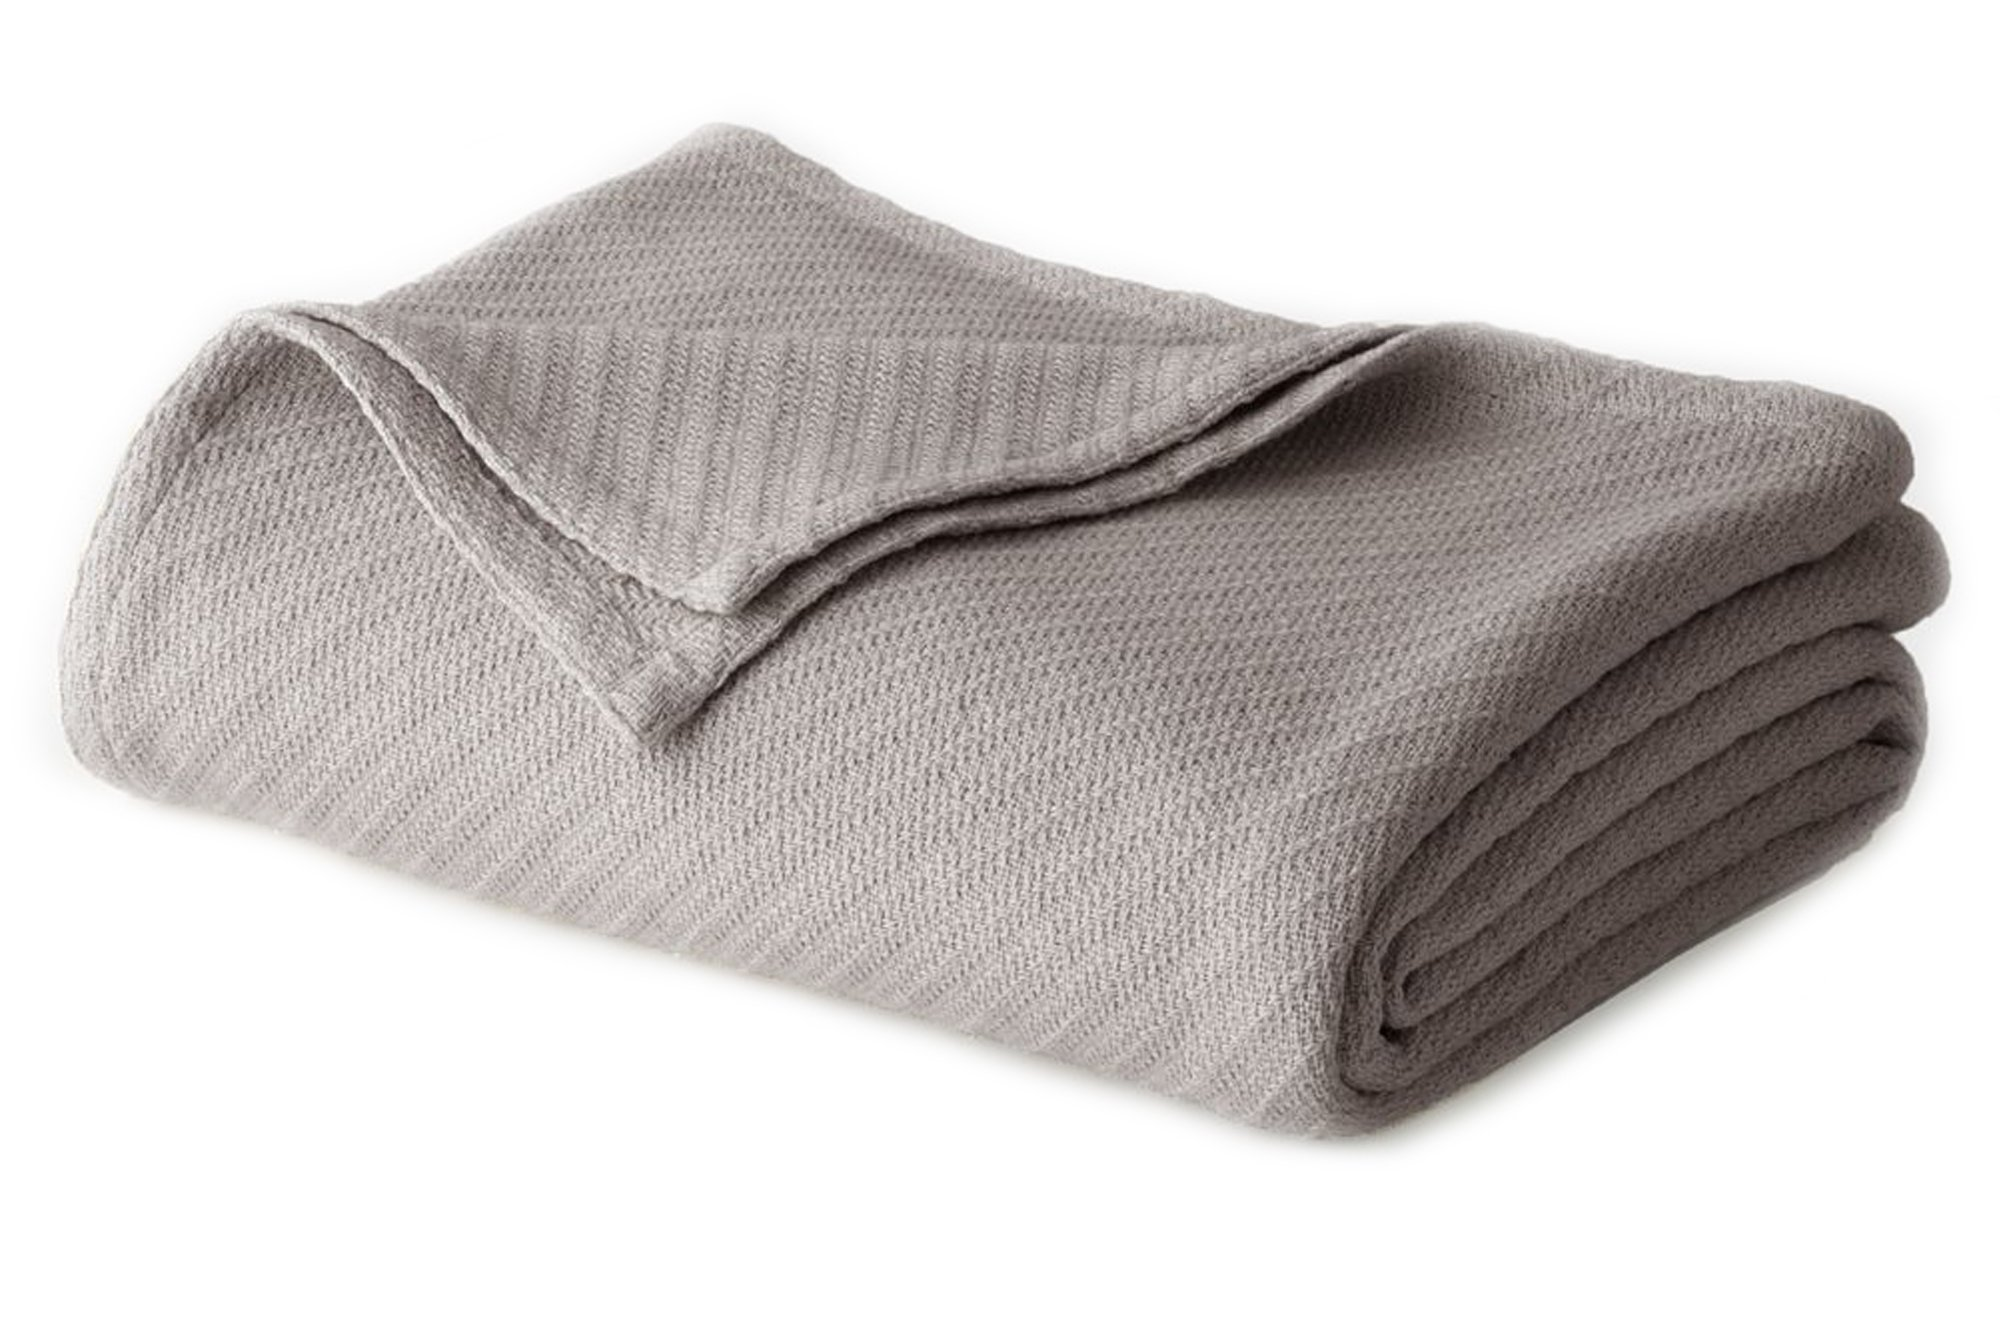 Cotton Craft - 100% Soft Premium Cotton Thermal Blanket - Full/Queen Grey - Snuggle in these Super Soft Cozy Cotton Blankets - Perfect for Layering any Bed - Provides Comfort and Warmth for years by Cotton Craft